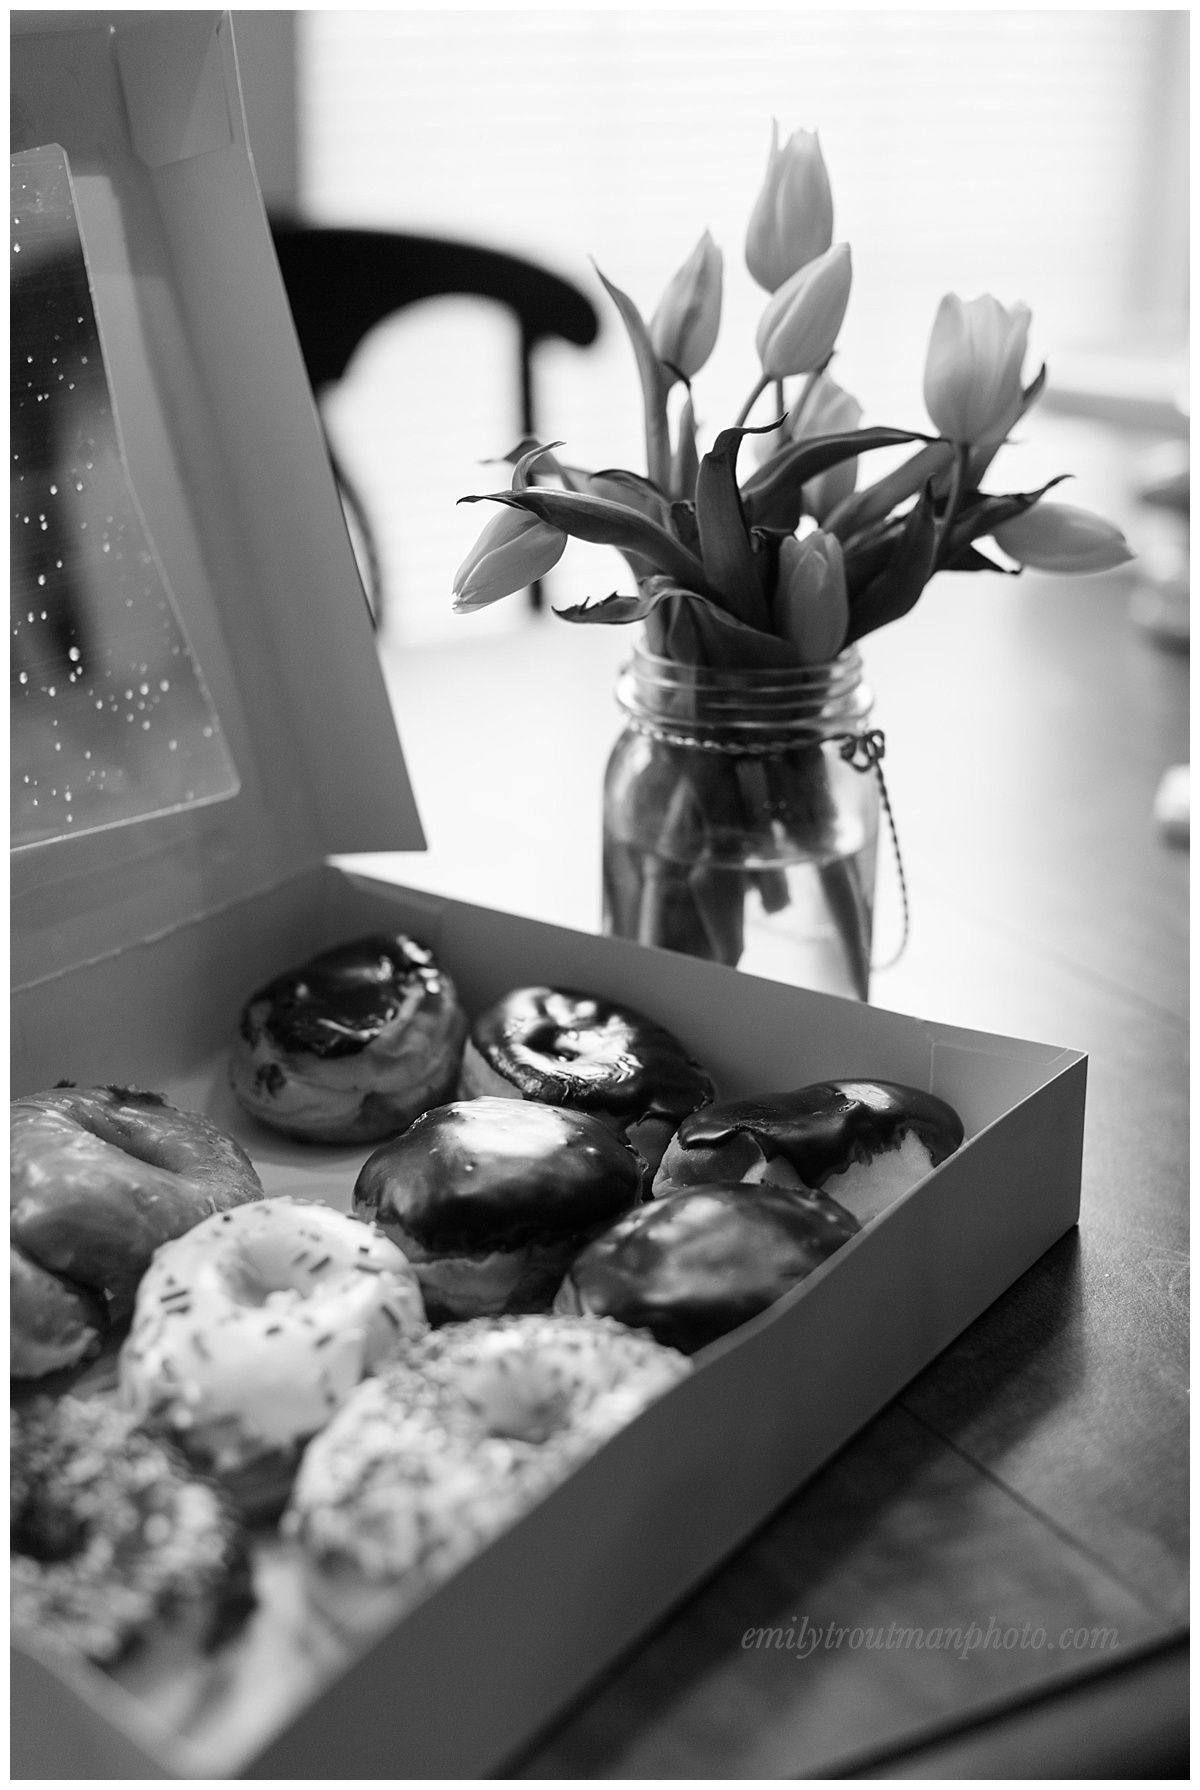 Daddy went for fresh donuts and notice the snow still melting on the lid of the box! Fresh donuts don't last long at this house!